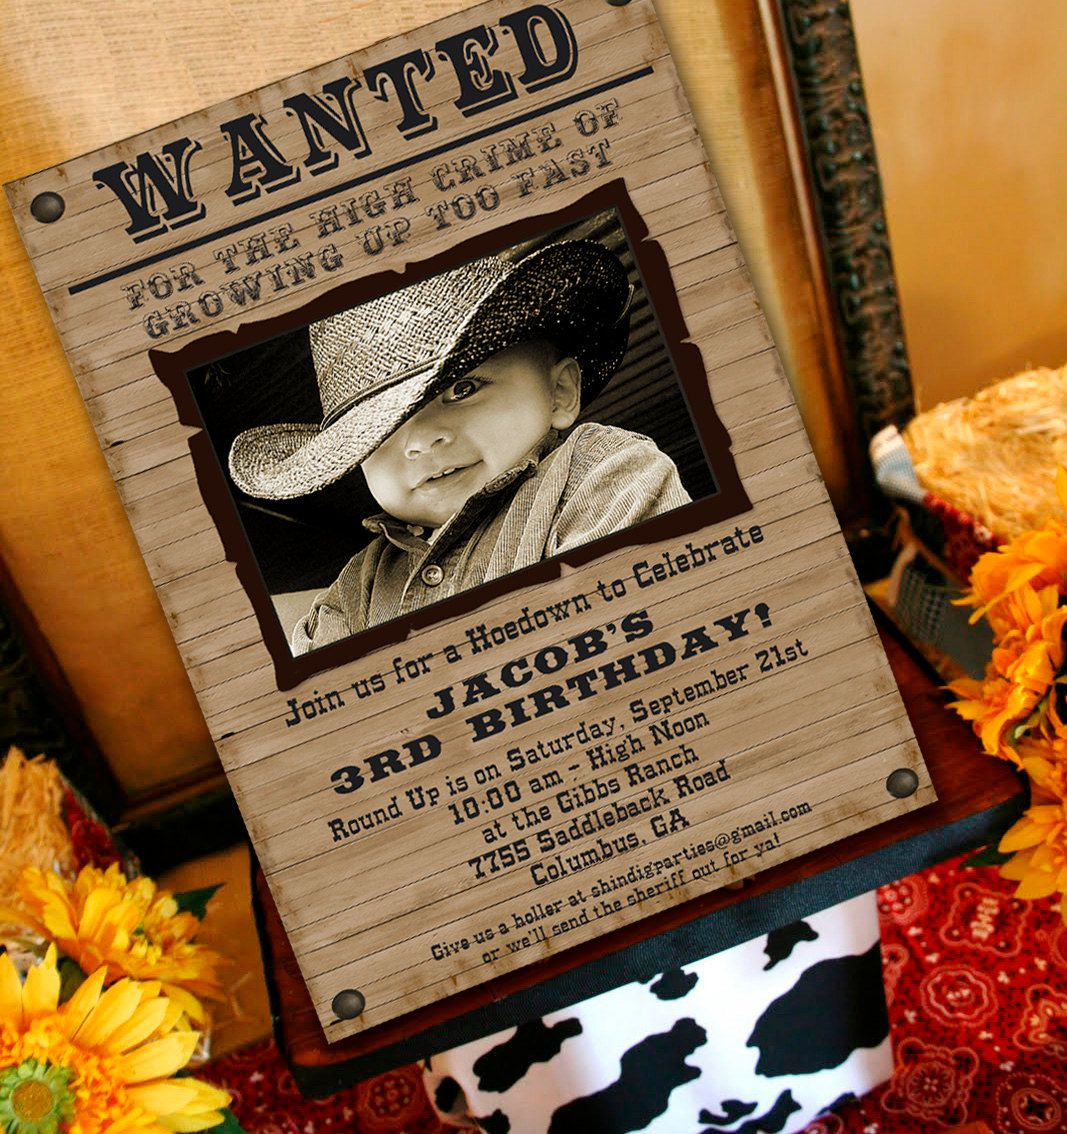 Cowboy party invitation ideas - Cowboy Birthday Invitation Cowboy Western Party Invitation Wanted Poster 1st Birthday Cowgirl Invitation Printable Amanda S Parties